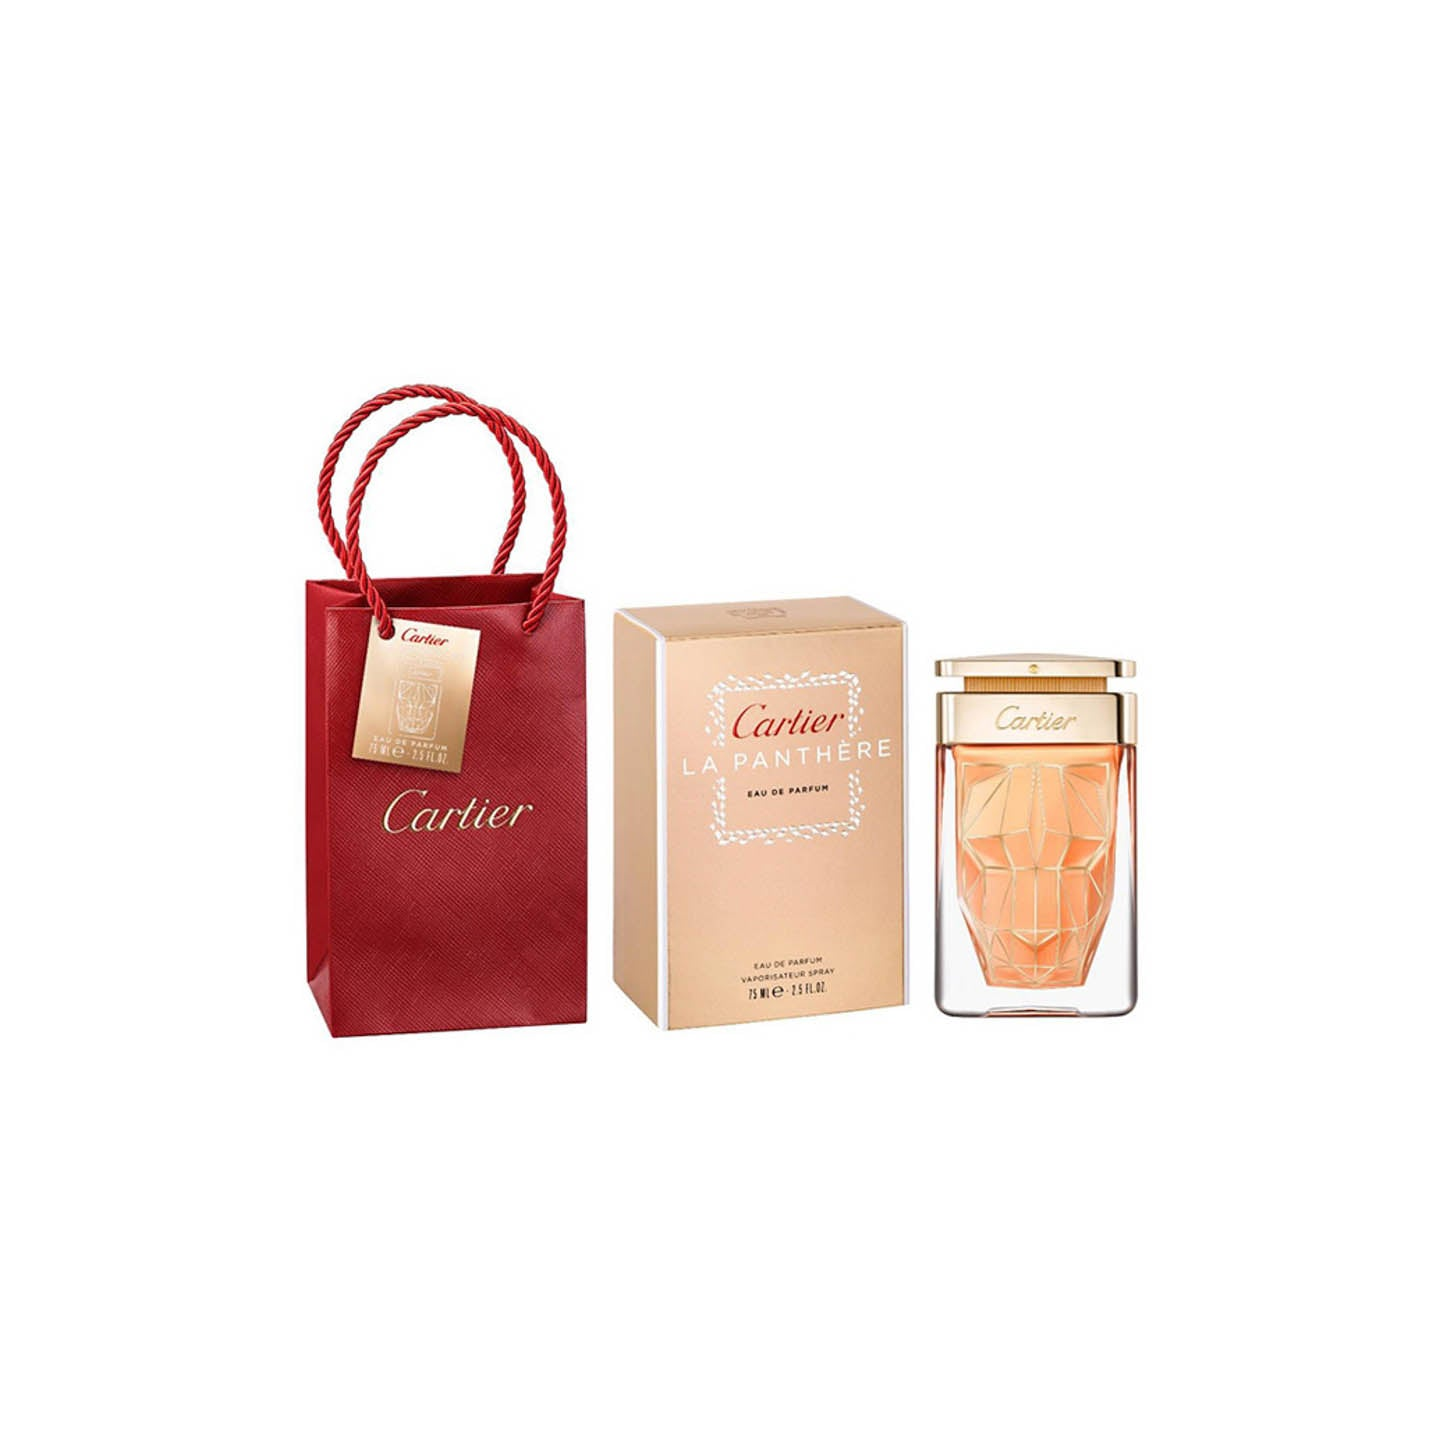 Cartier La Panthere Legere & red bag